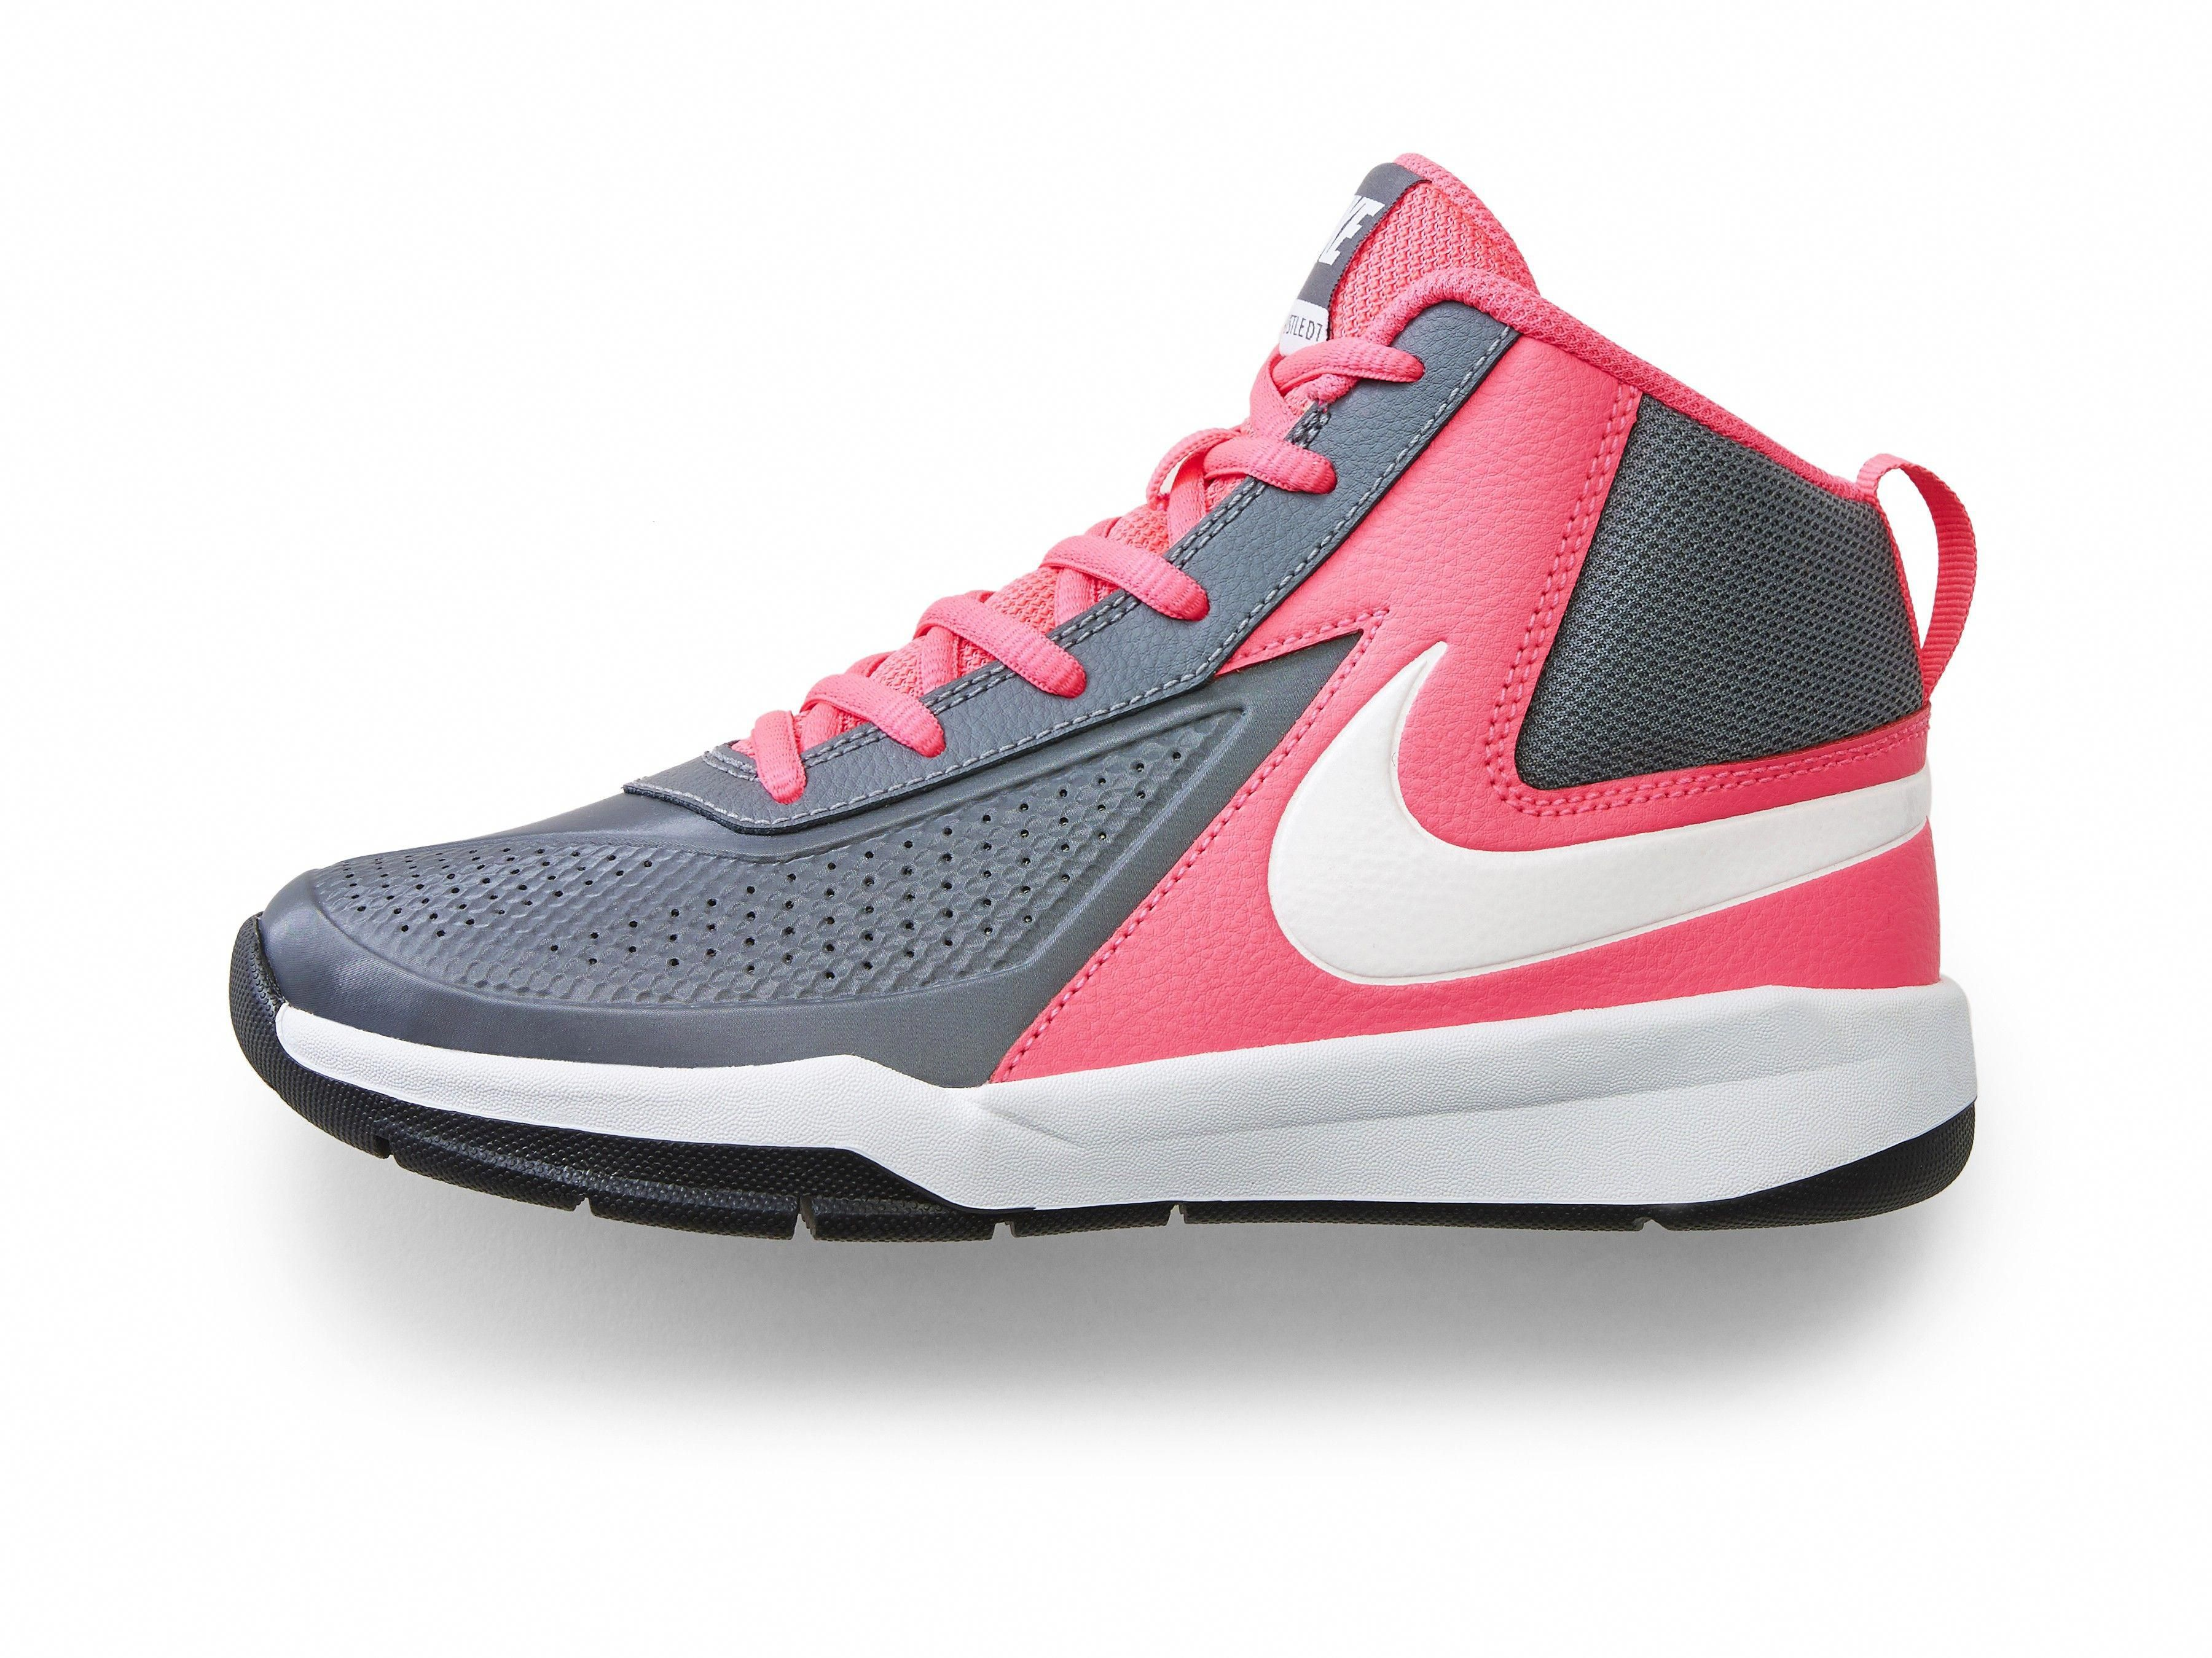 715c6e8c197b Refferal  9328058408  ProBasketball Girls Basketball Shoes